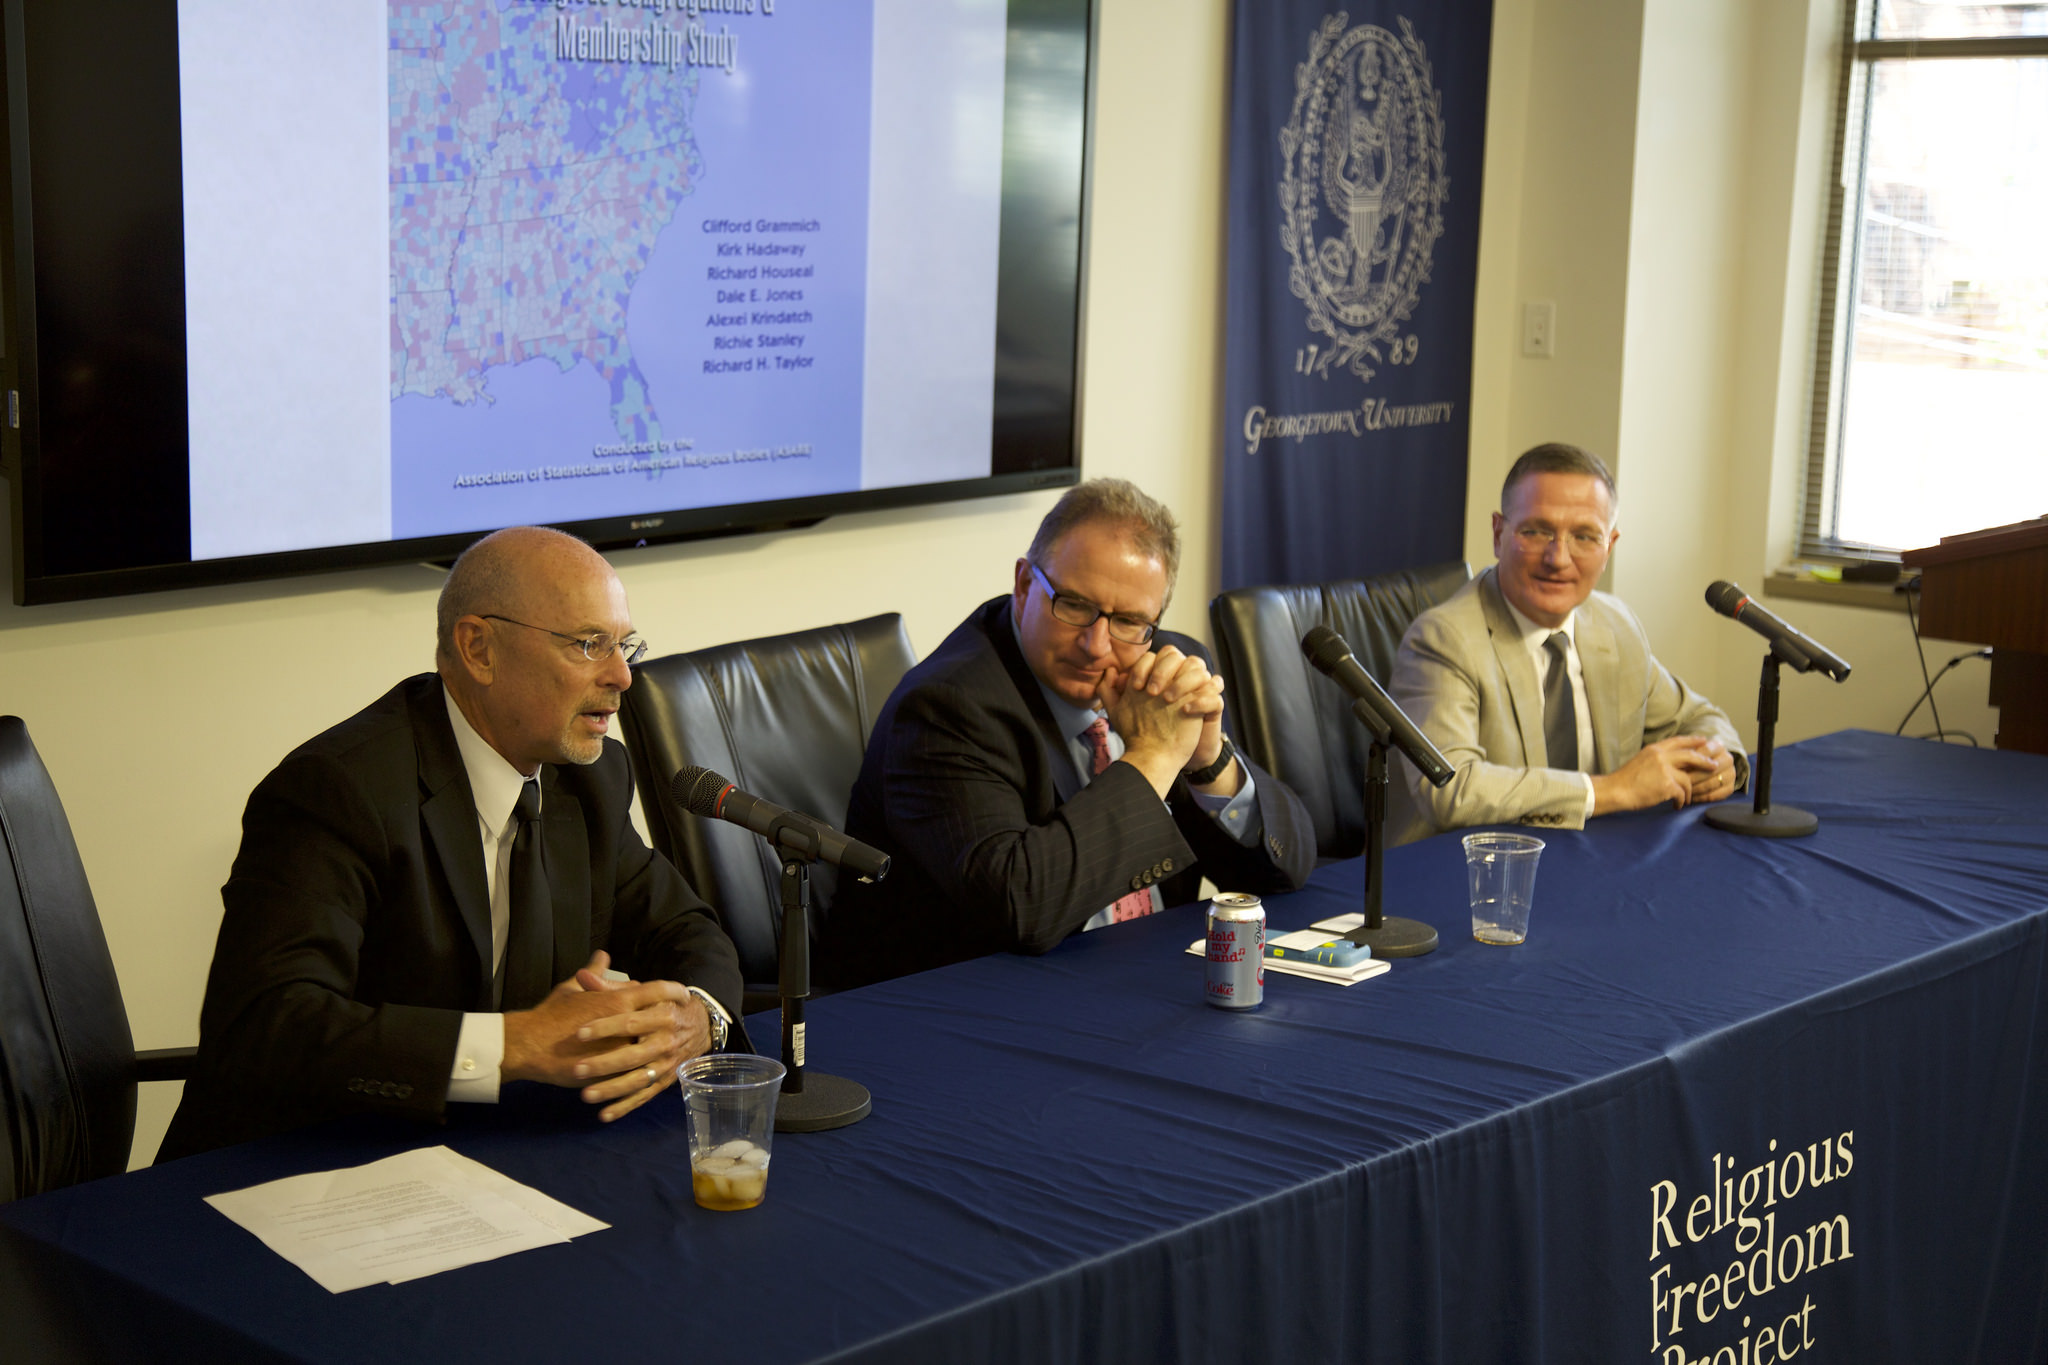 Panelists discussed the new research and future lines of inquiry.